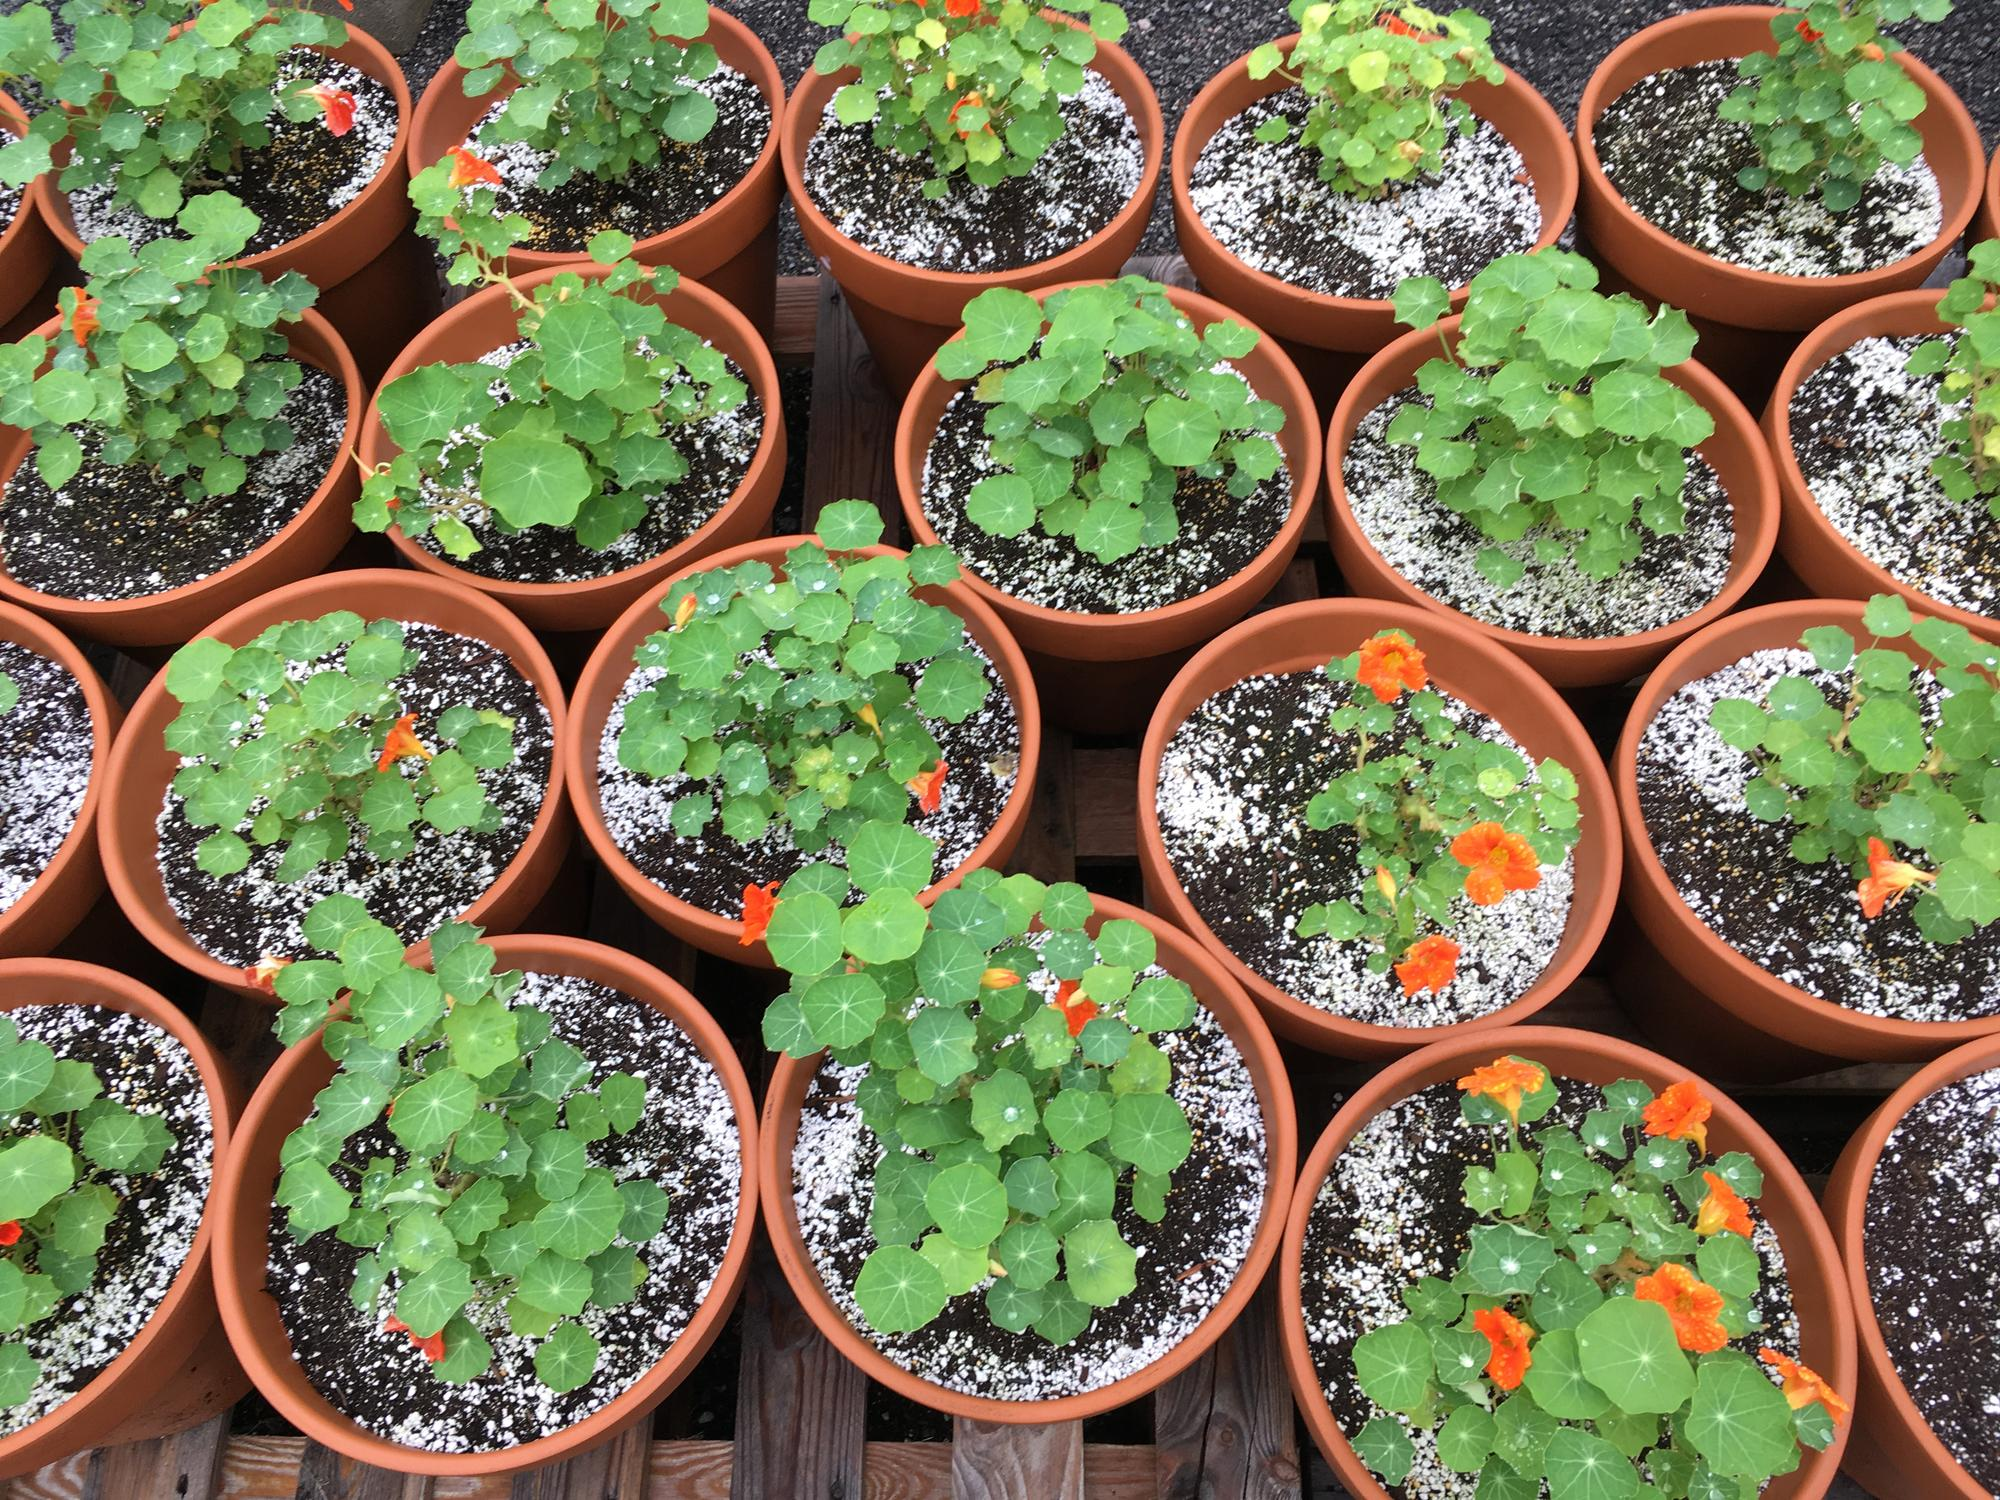 An overhead shot of the tiny nasturtium plants, just beginning to grow their first flowers.